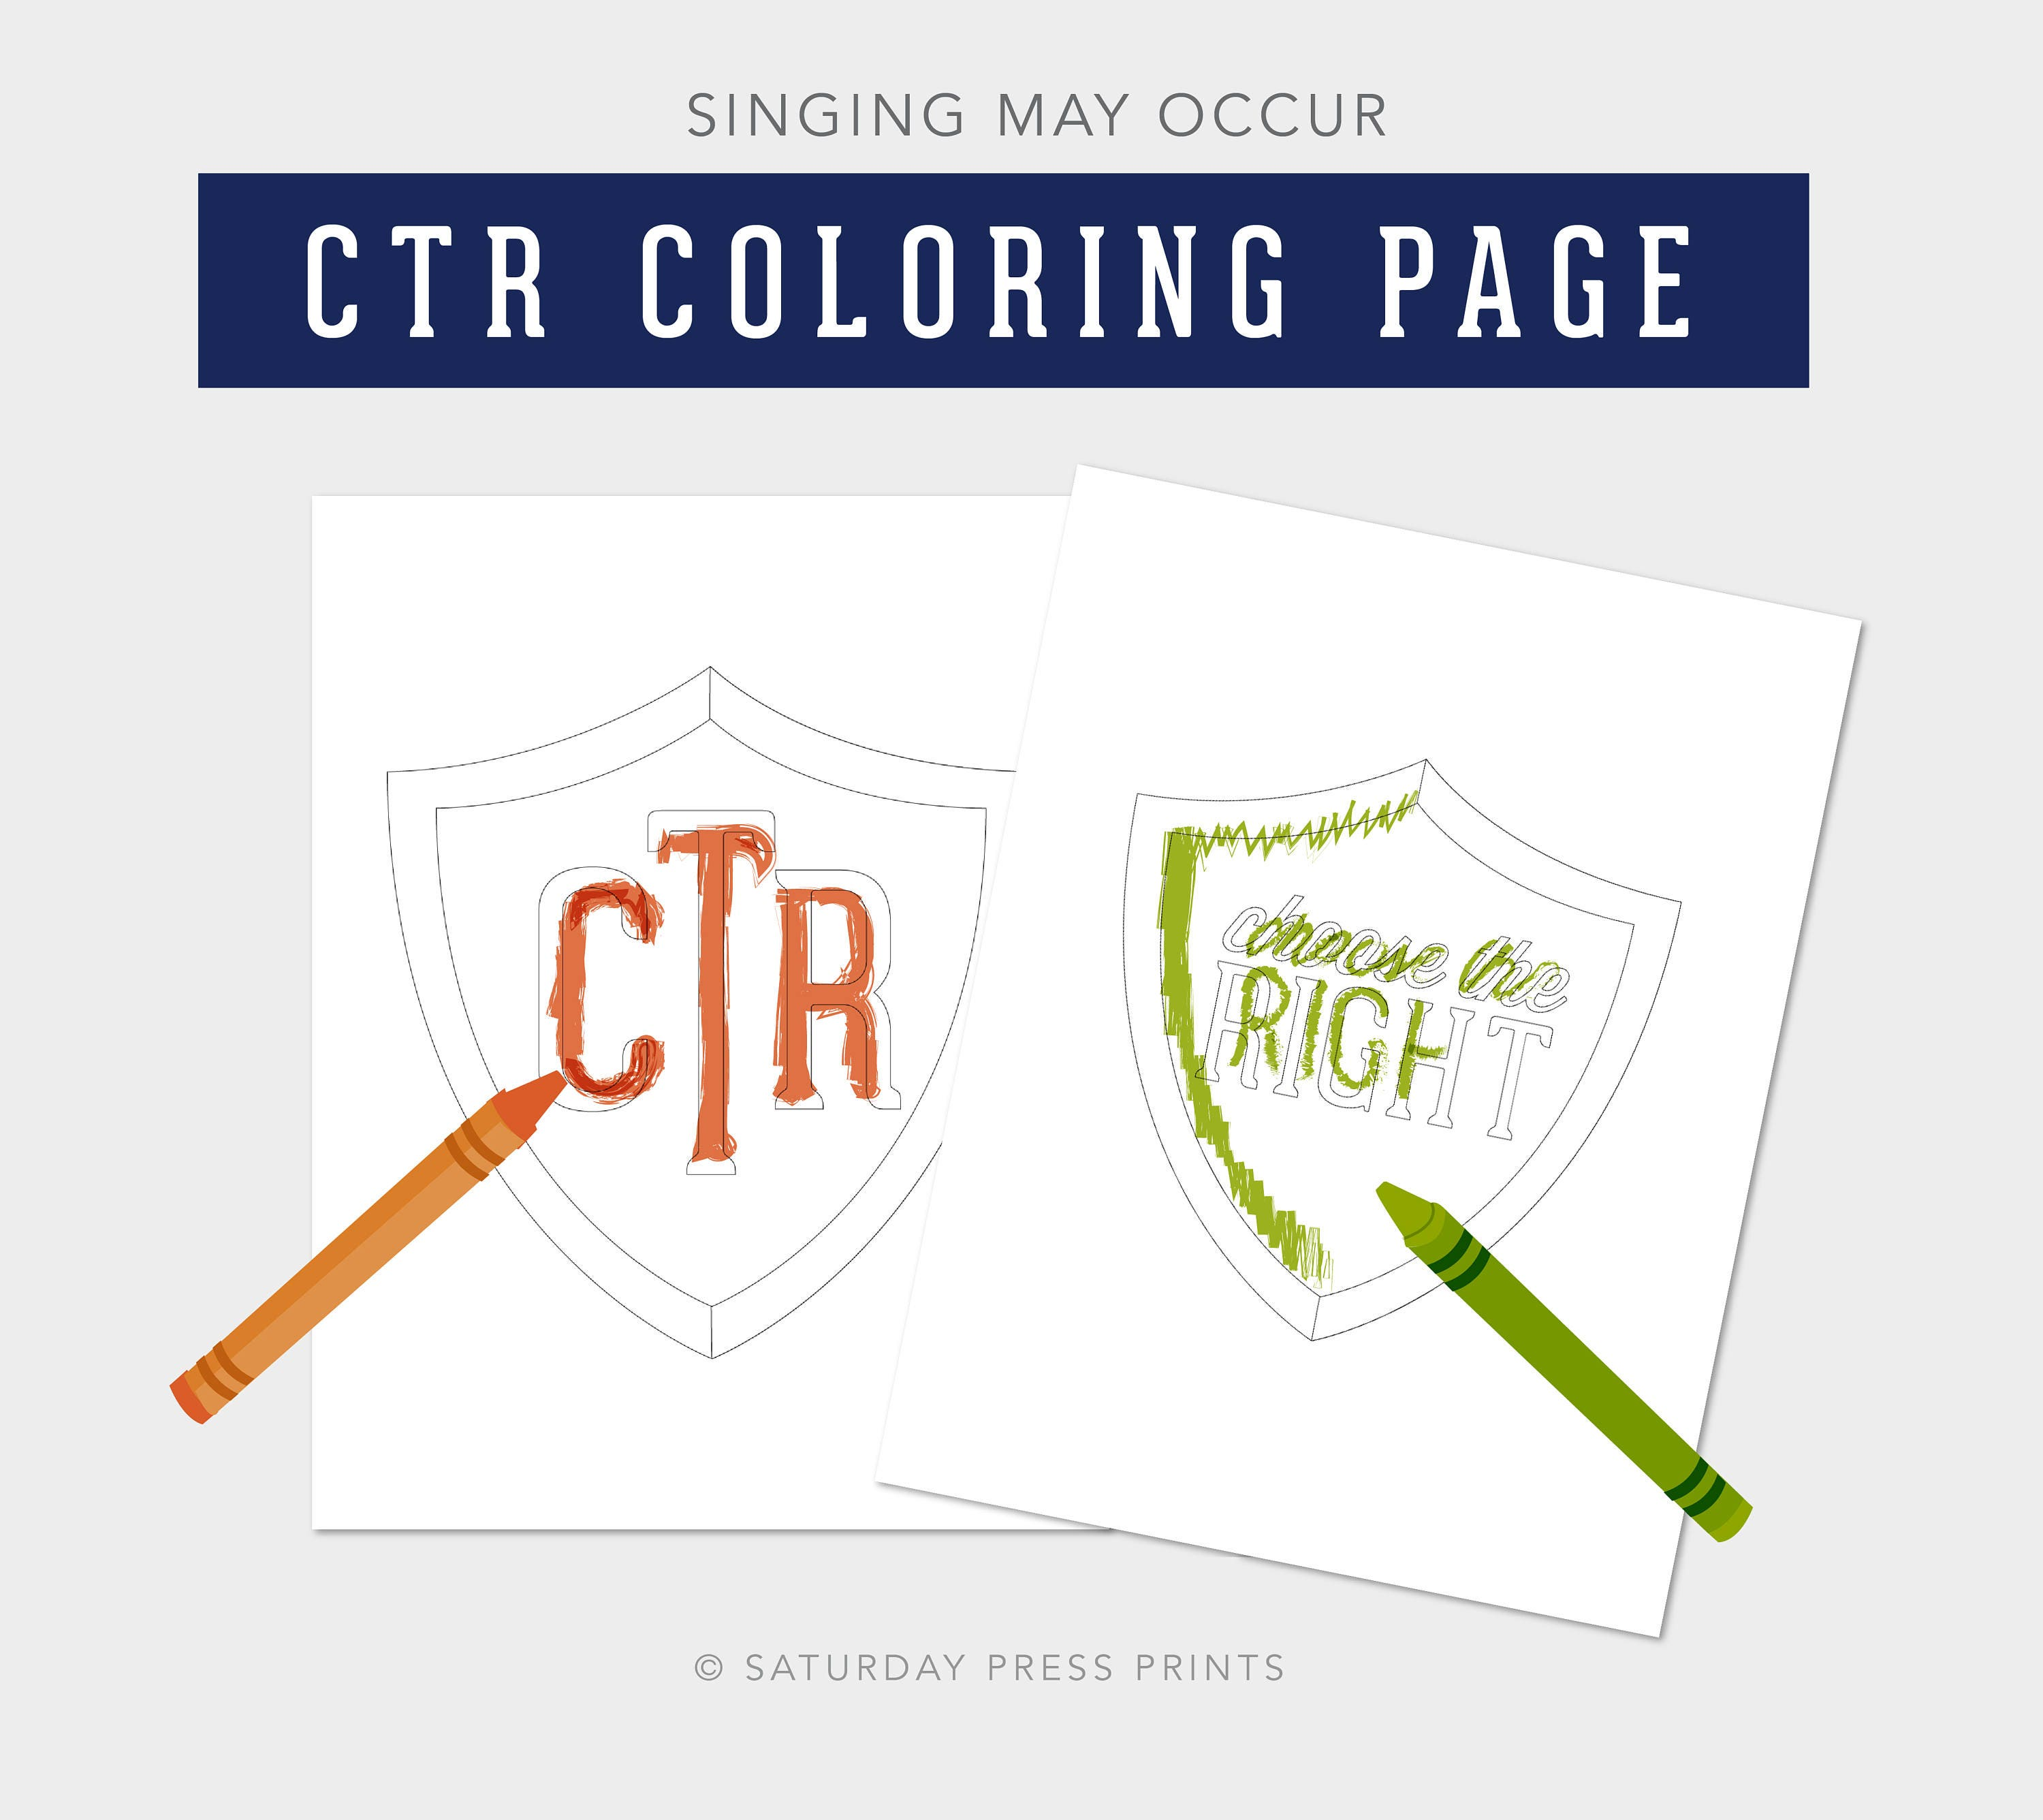 choose the right coloring page - choose the right coloring page ctr shield lesson helps